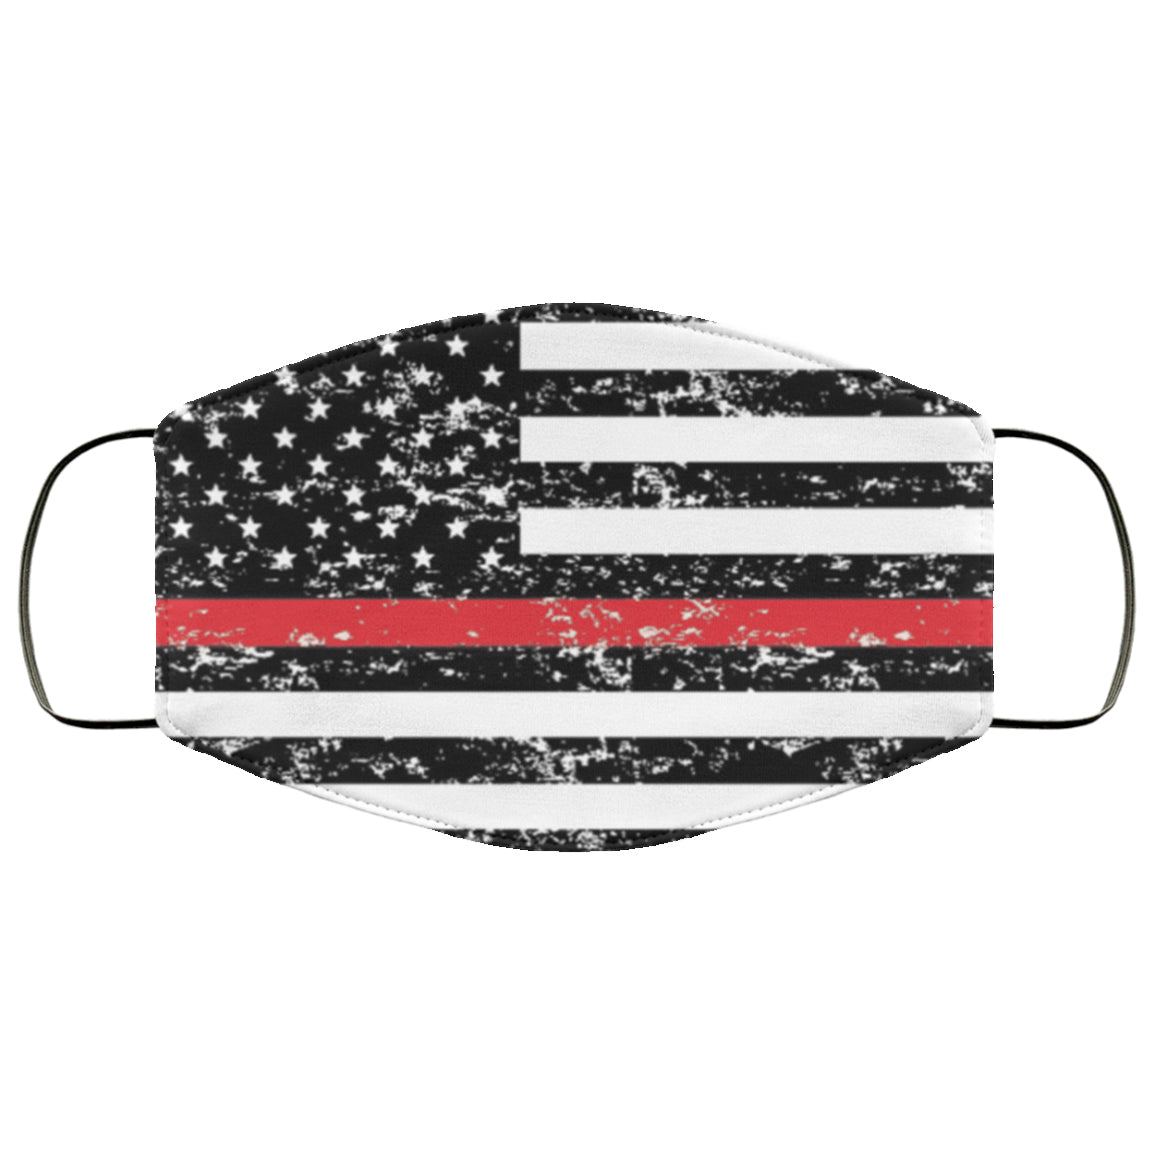 Firefighter Firefighters Thin Red Line Distressed Effect Face Mask